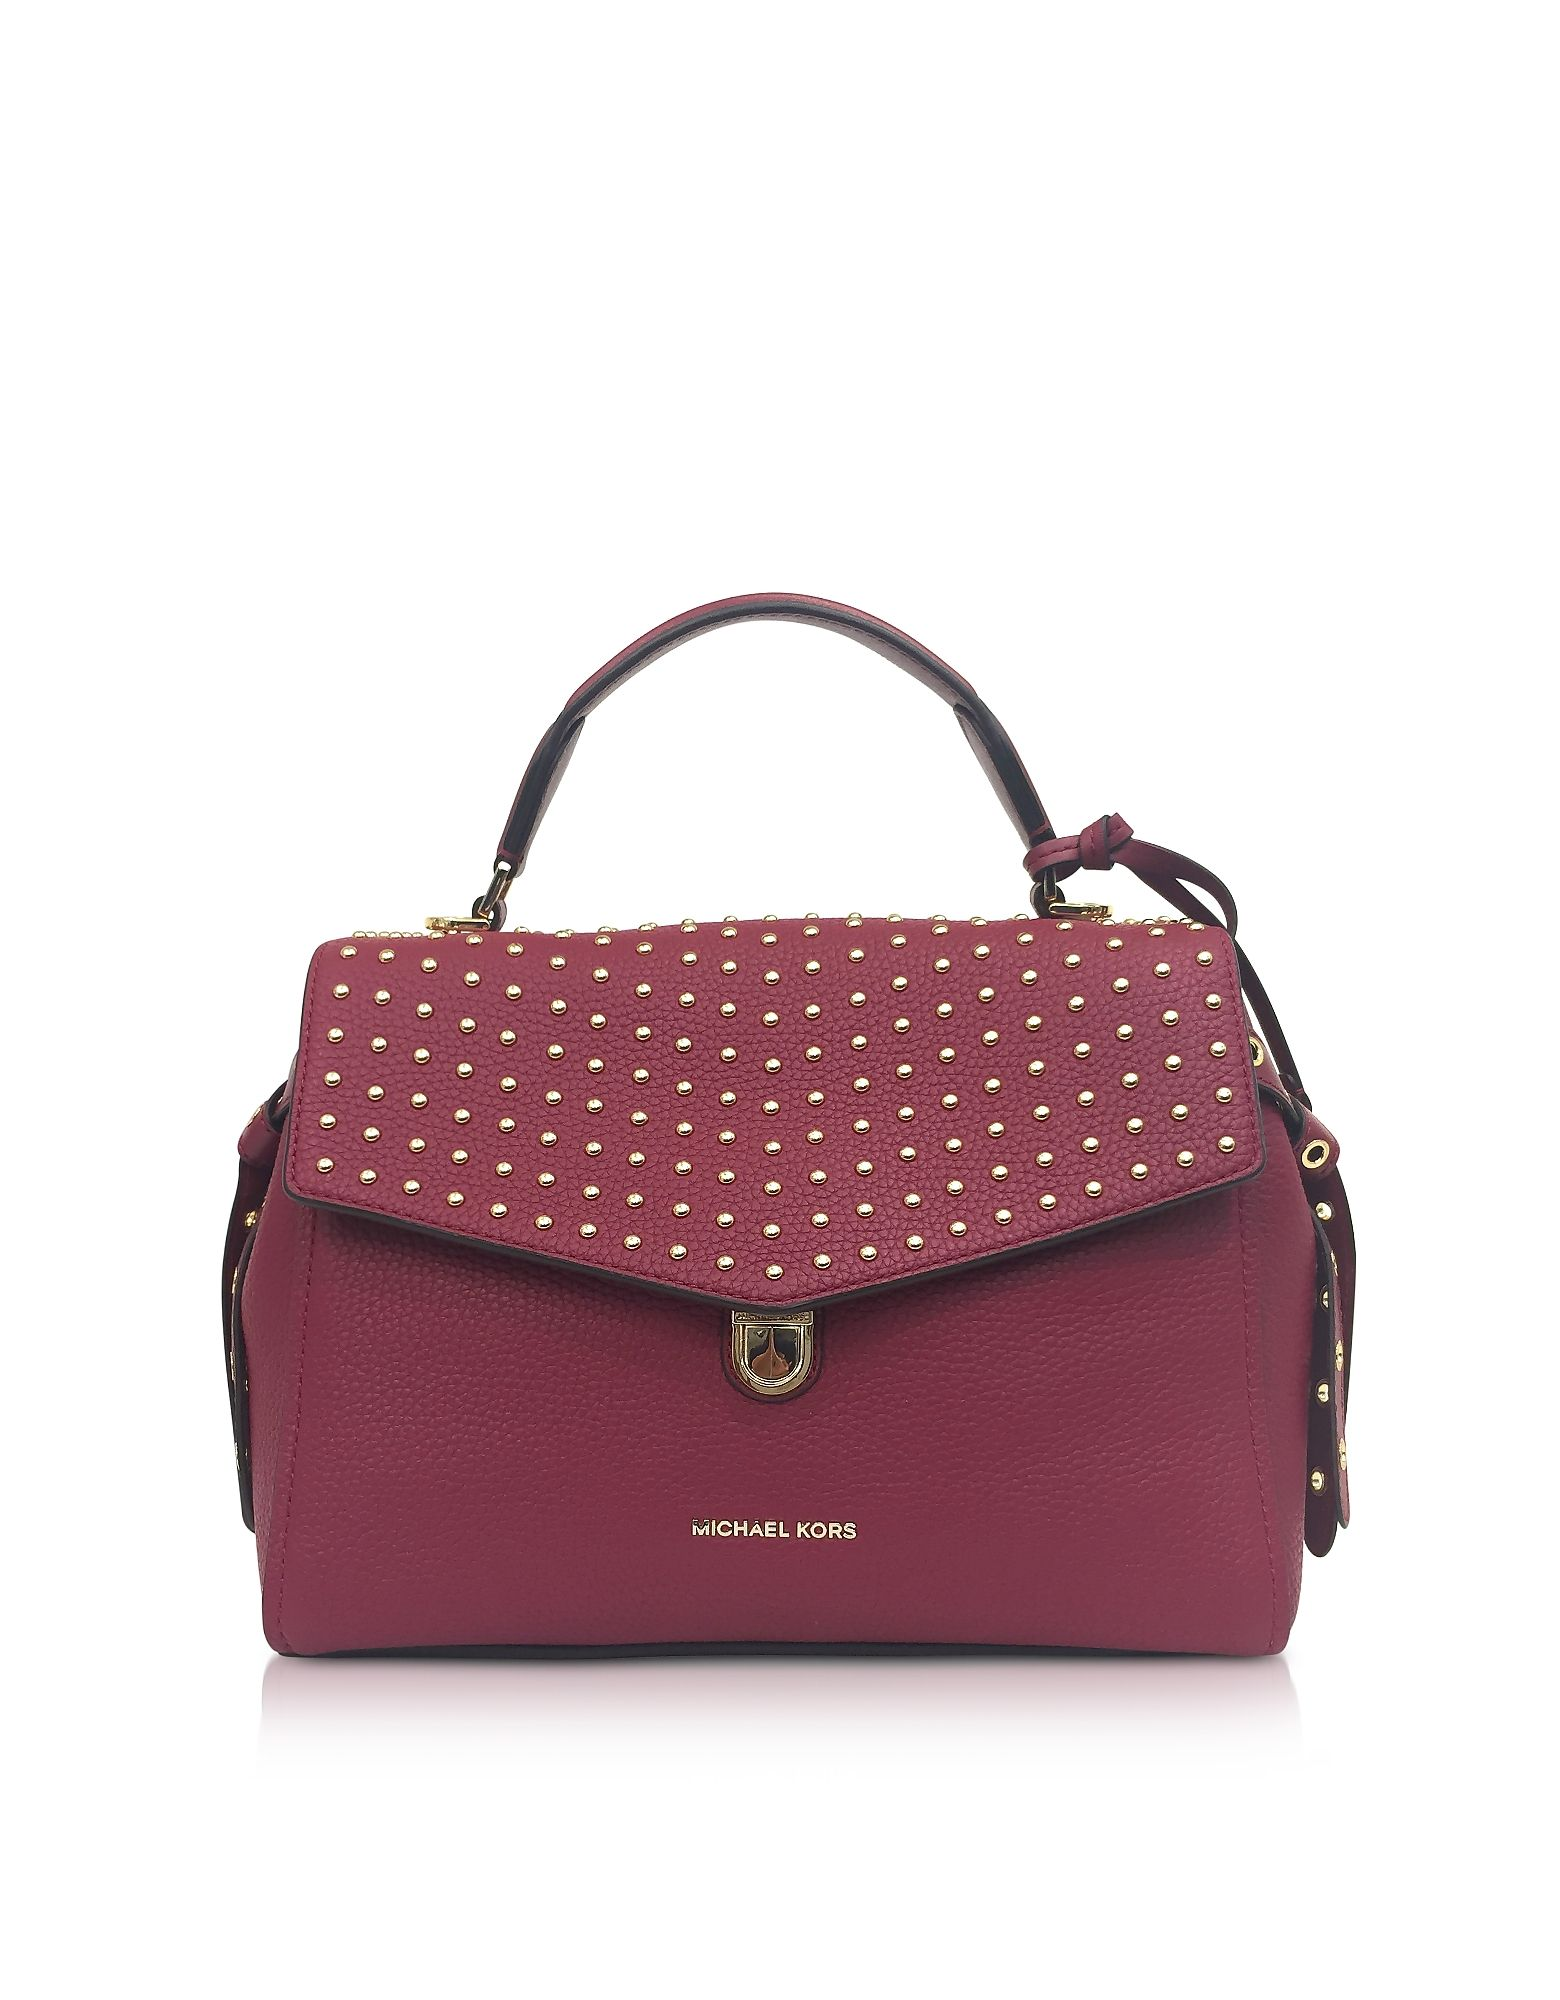 04c5846726d8 ... where to buy michael kors bristol mulberry studded leather top handle  satchel bag. michaelkors bags